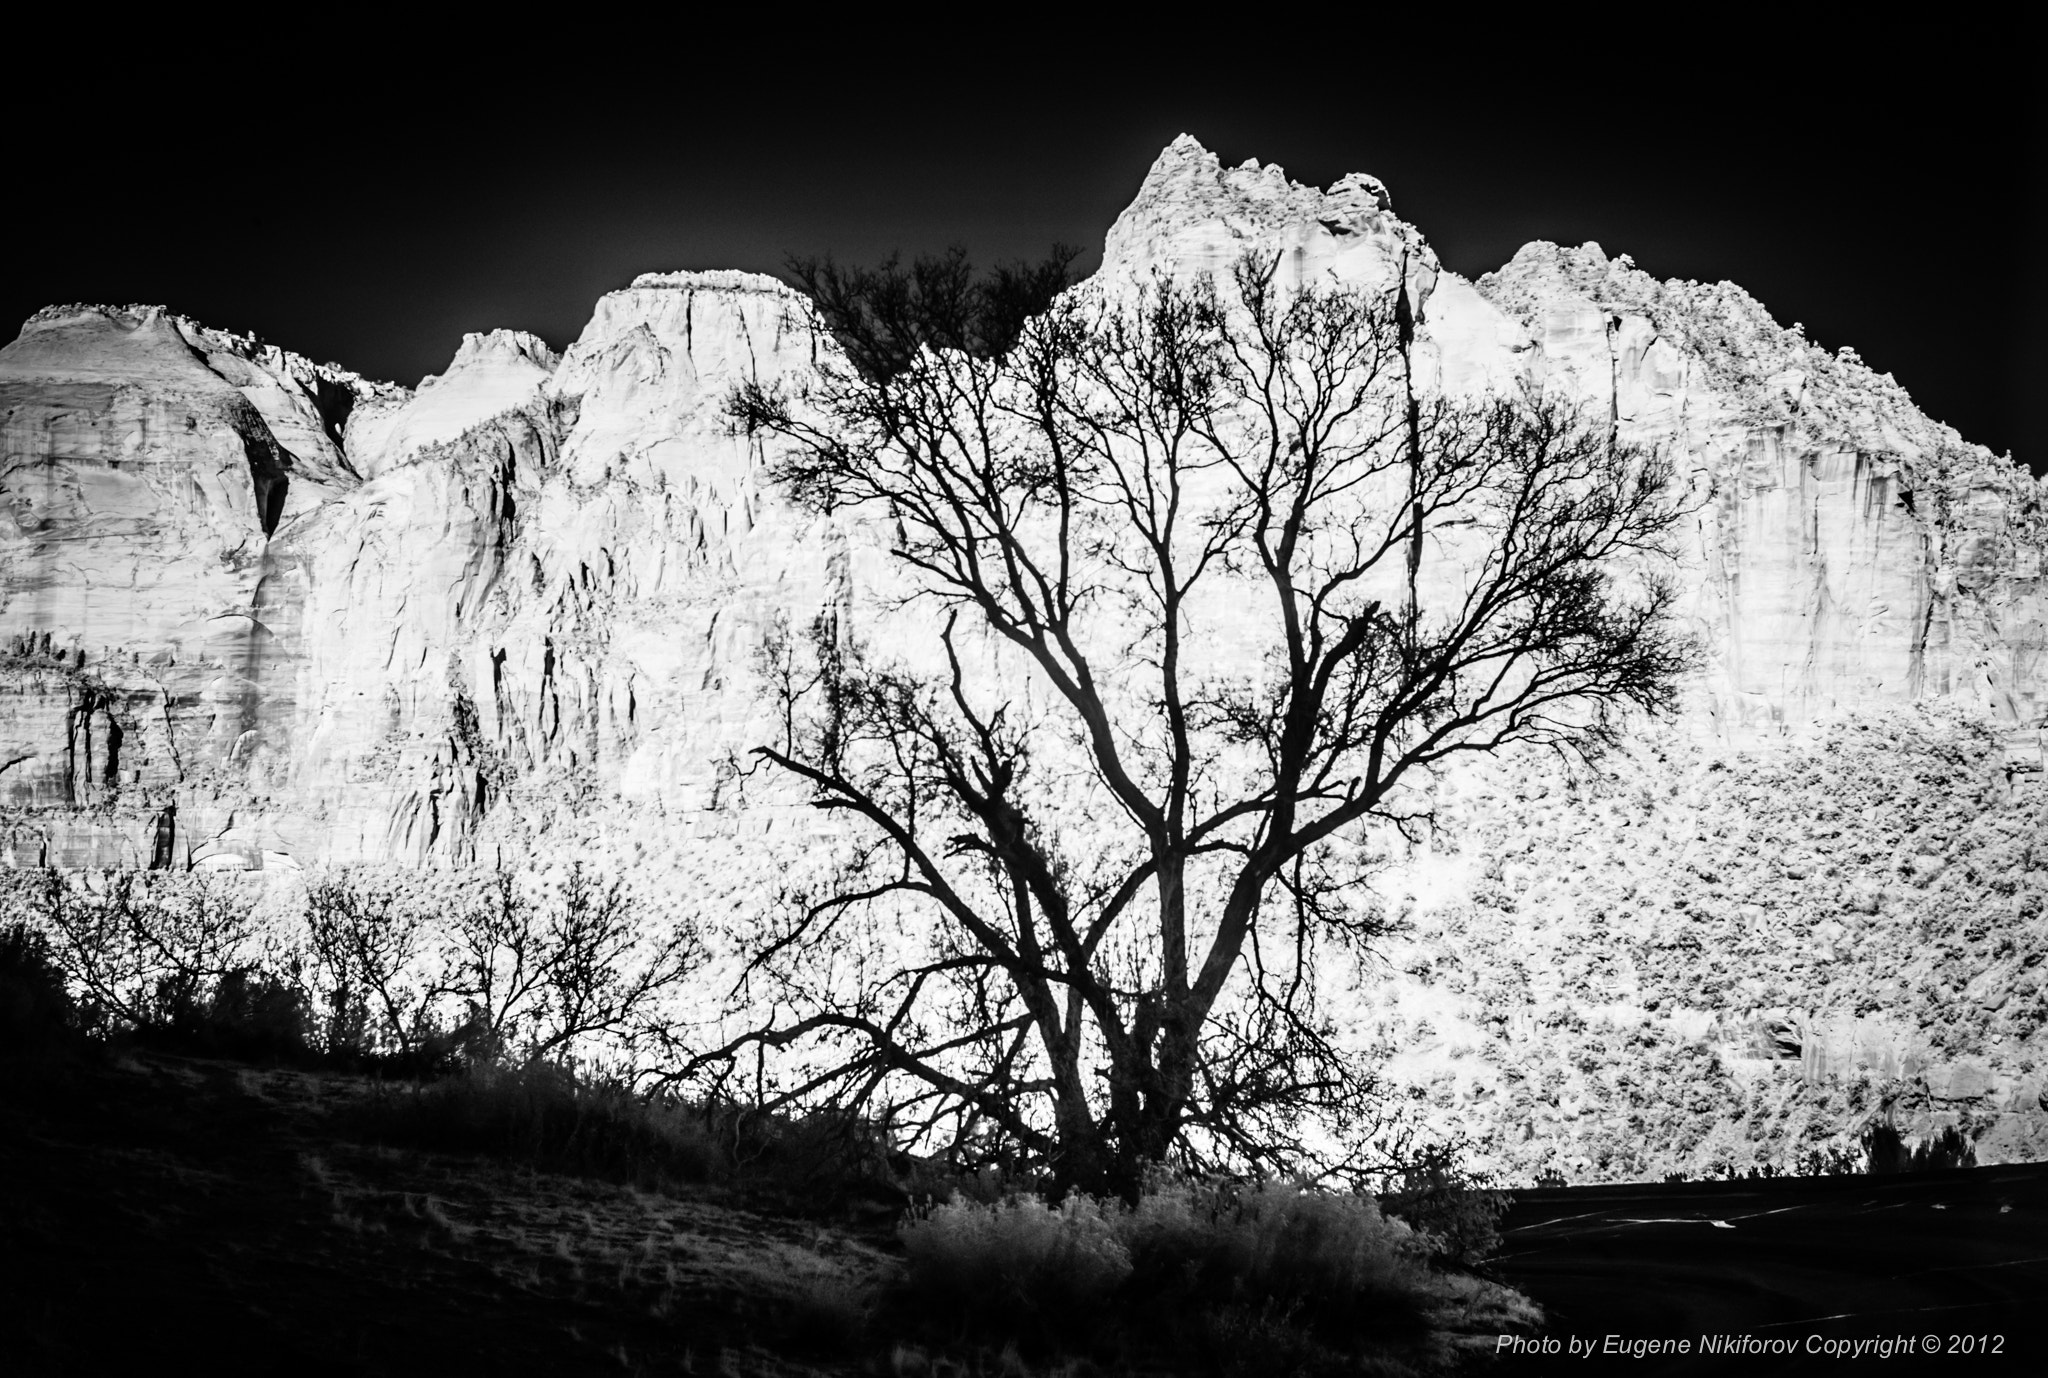 Photograph Zion National Park, infrared by Eugene Nikiforov on 500px